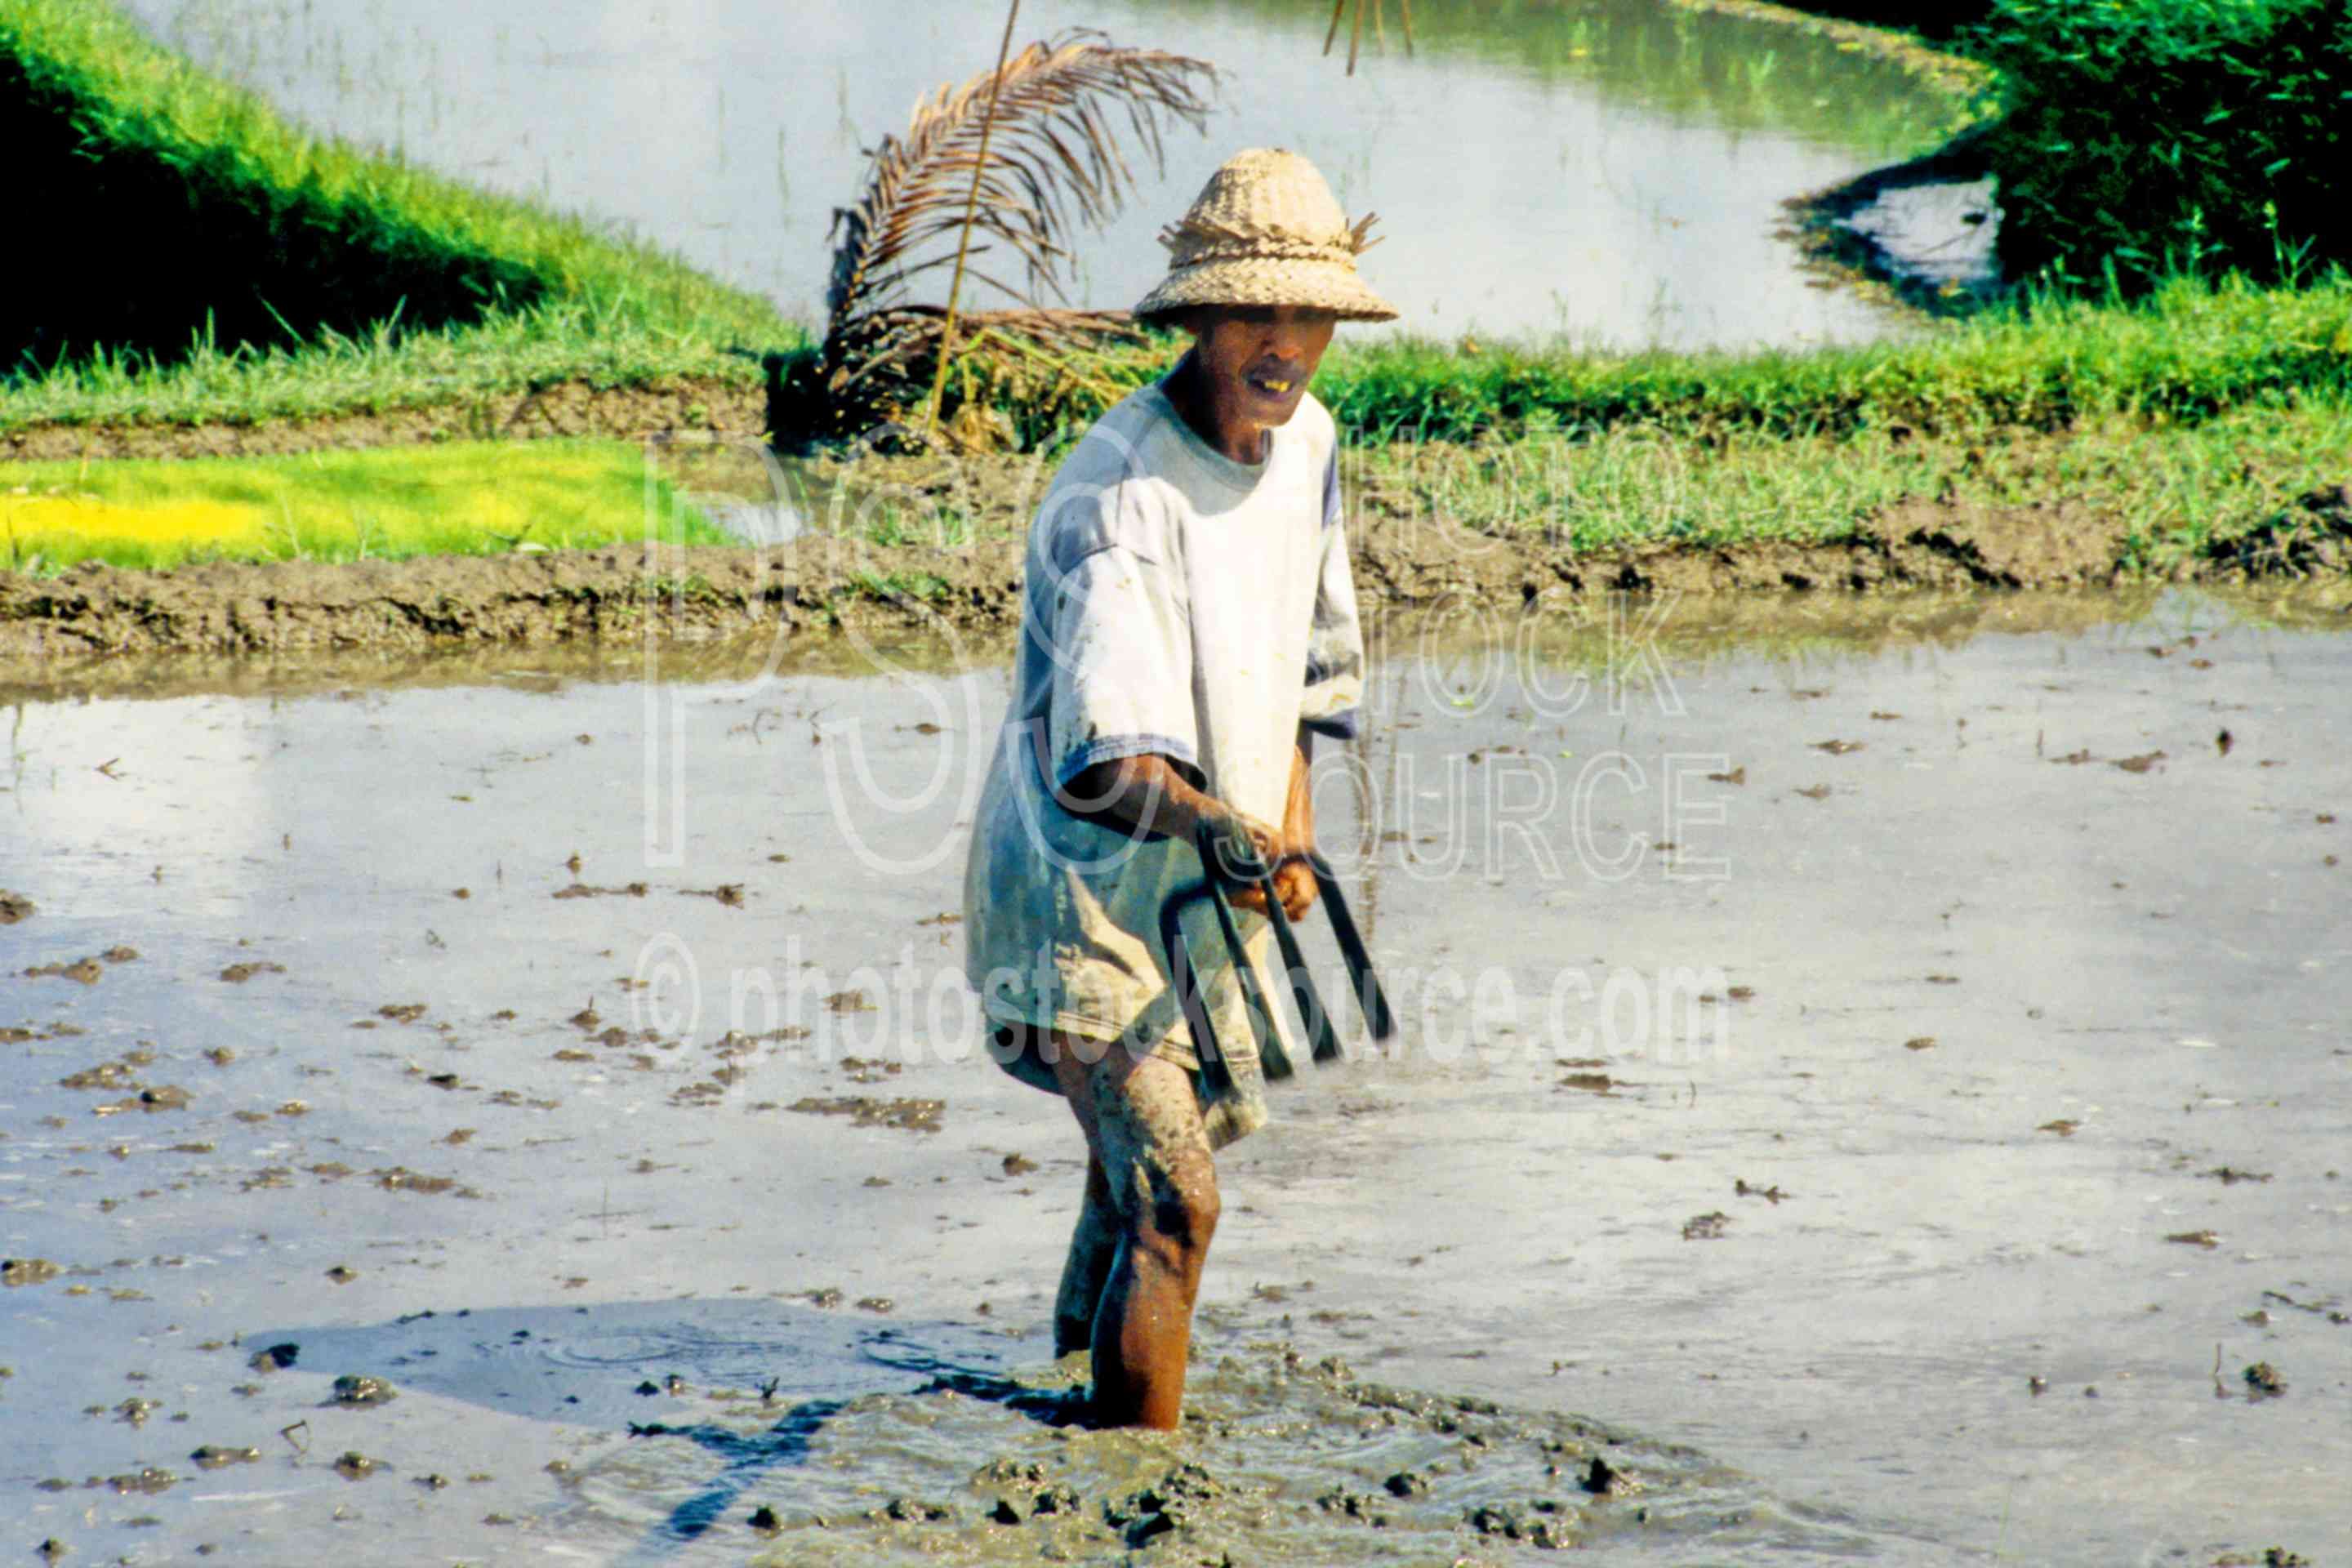 Man in Rice Field,mans,work,working,rice field,agriculture